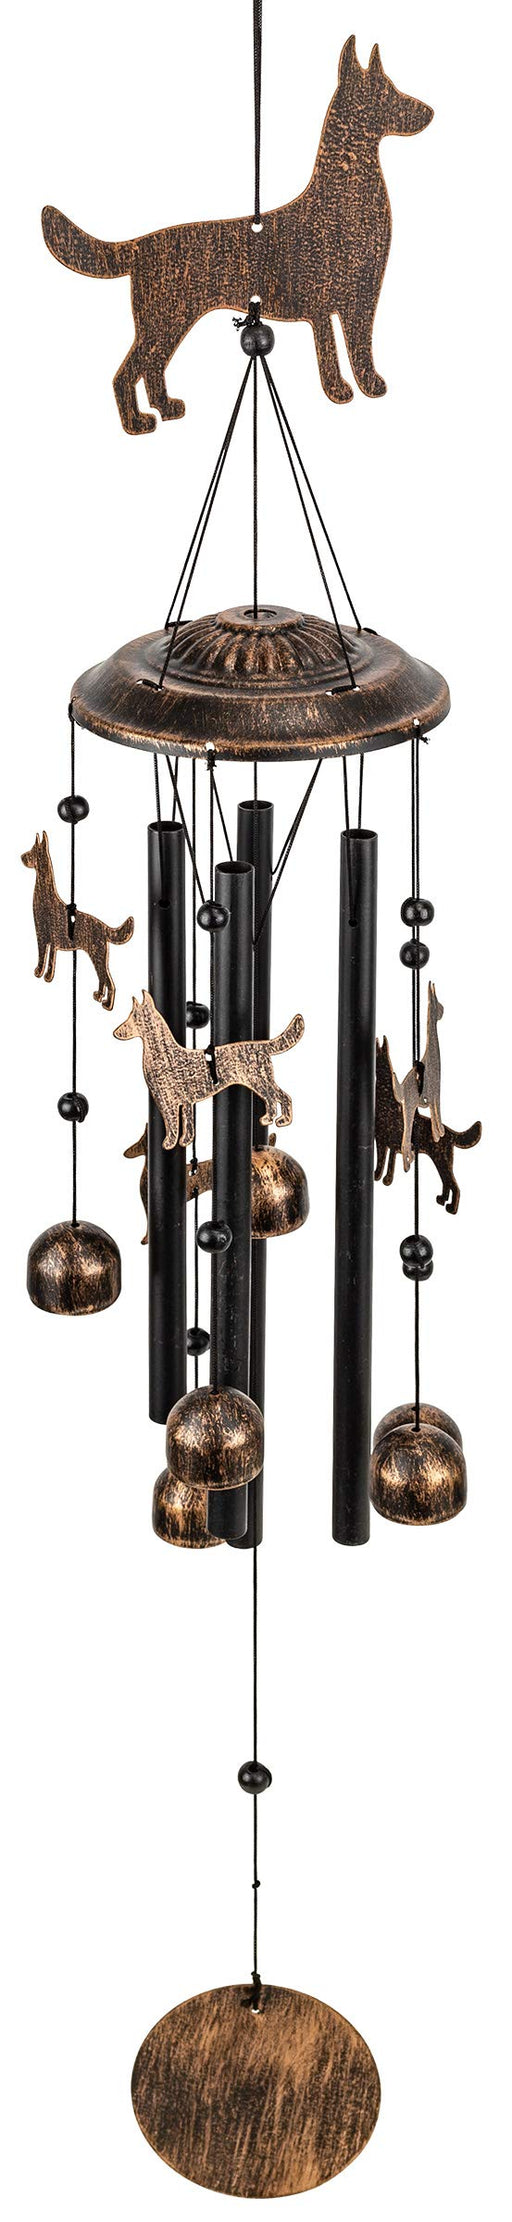 Dogs Outdoor Garden Decor Wind Chime